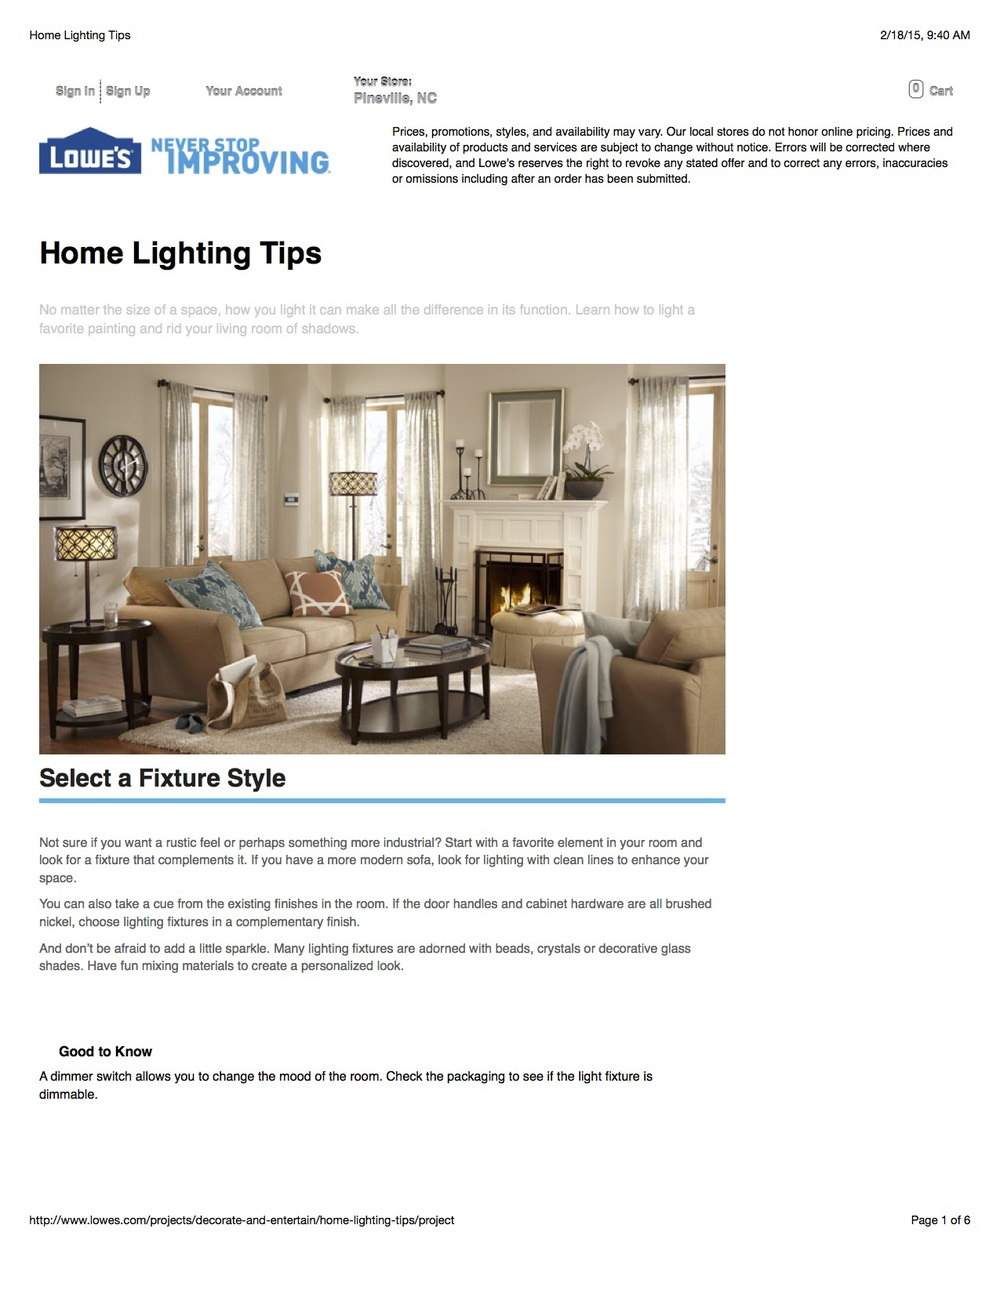 Home Lighting Tips_1.jpg